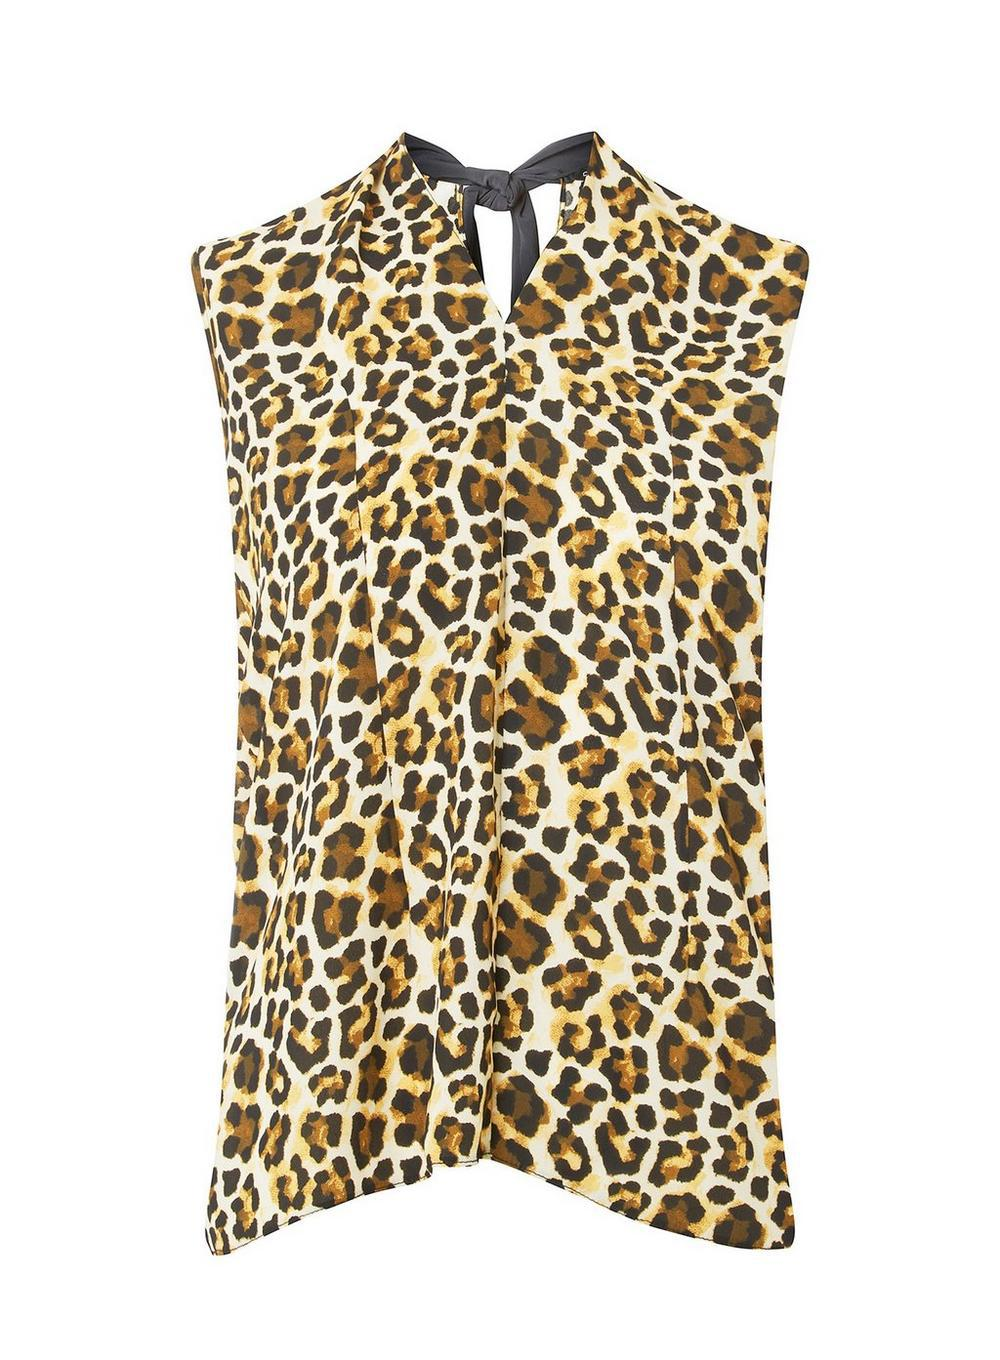 0524b2ed53d Dorothy Perkins. Women's Animal Print Tie Back Top